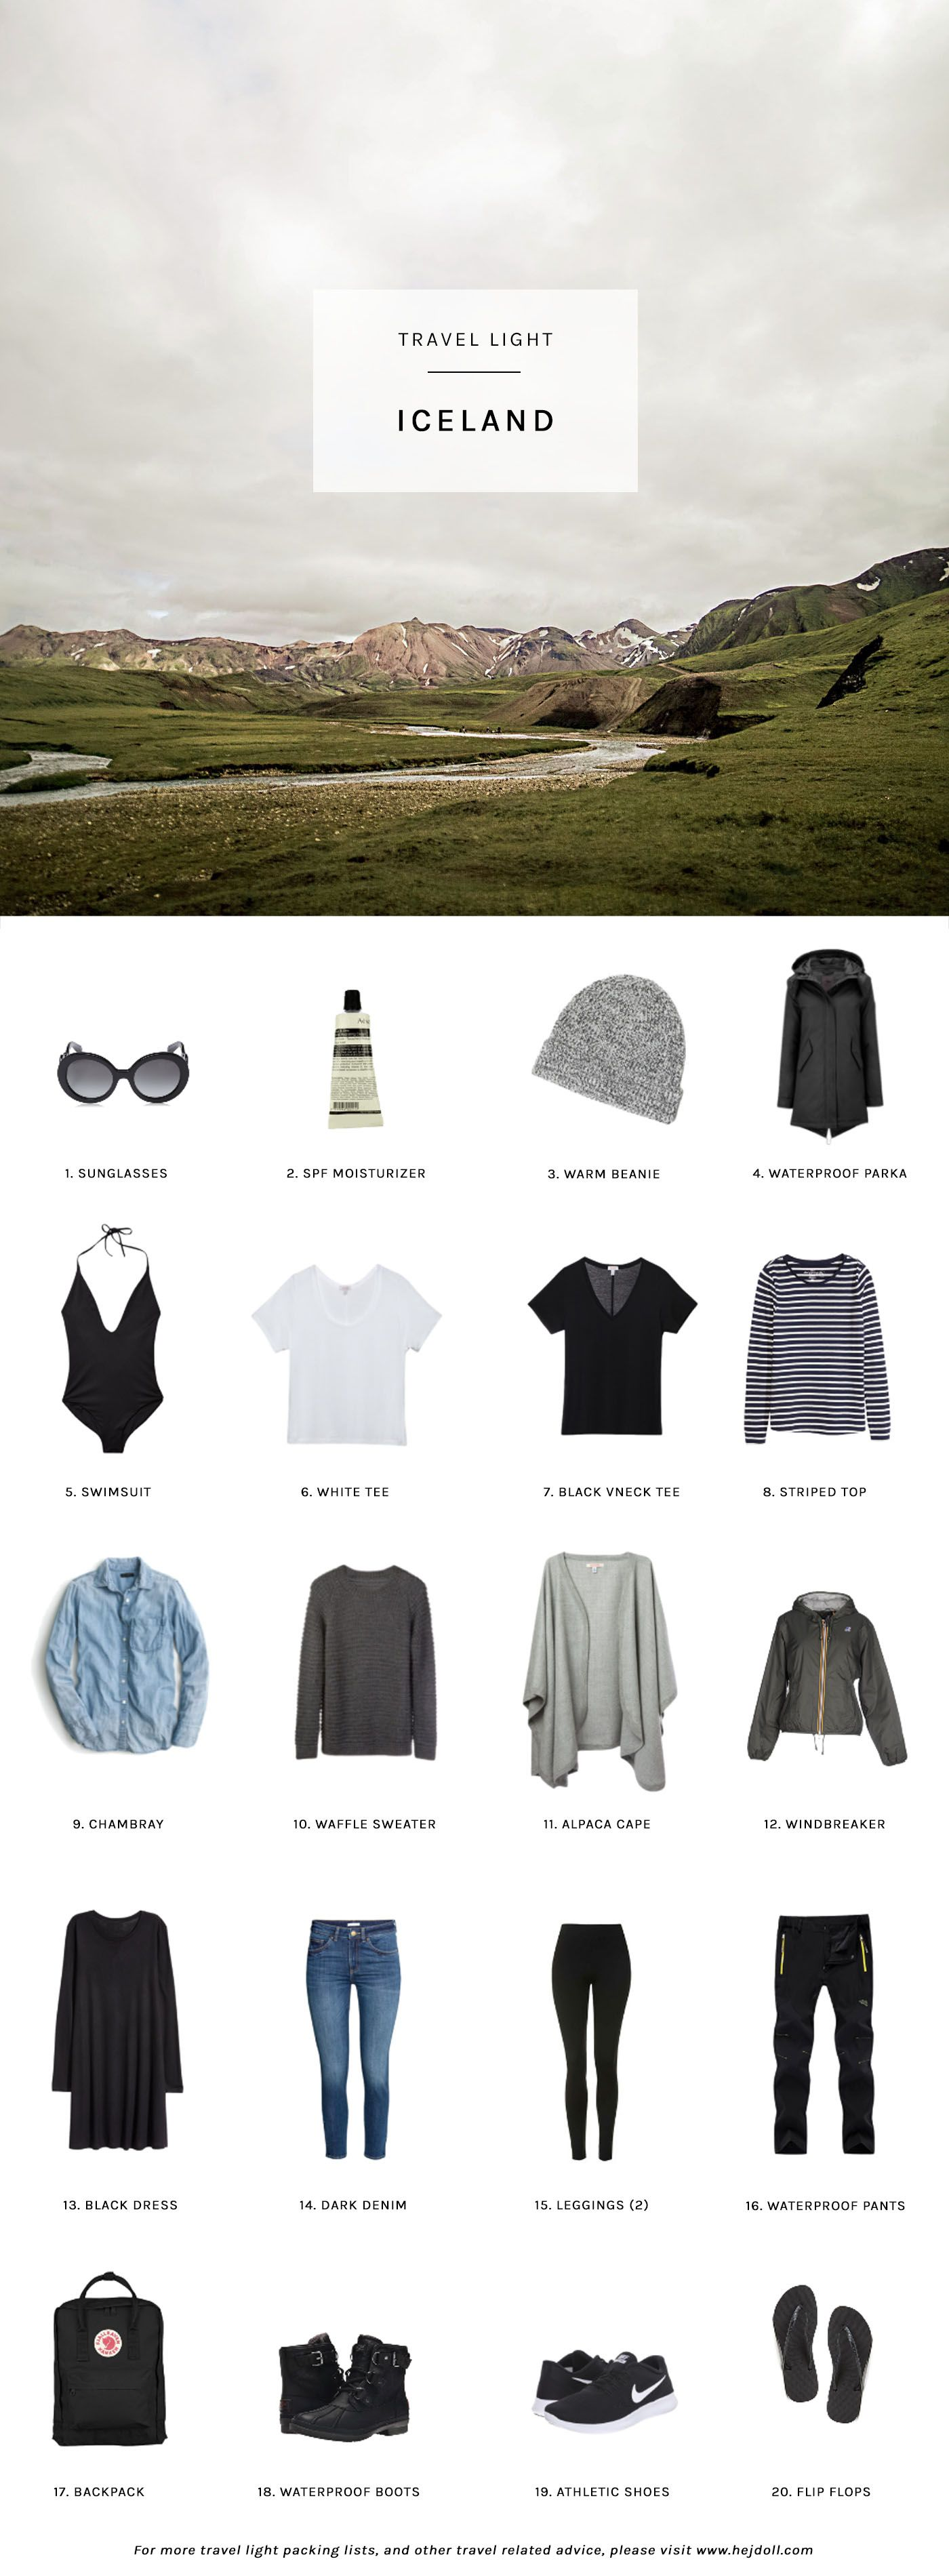 Travel Light - Pack for Iceland in the Summer. 20 items ...